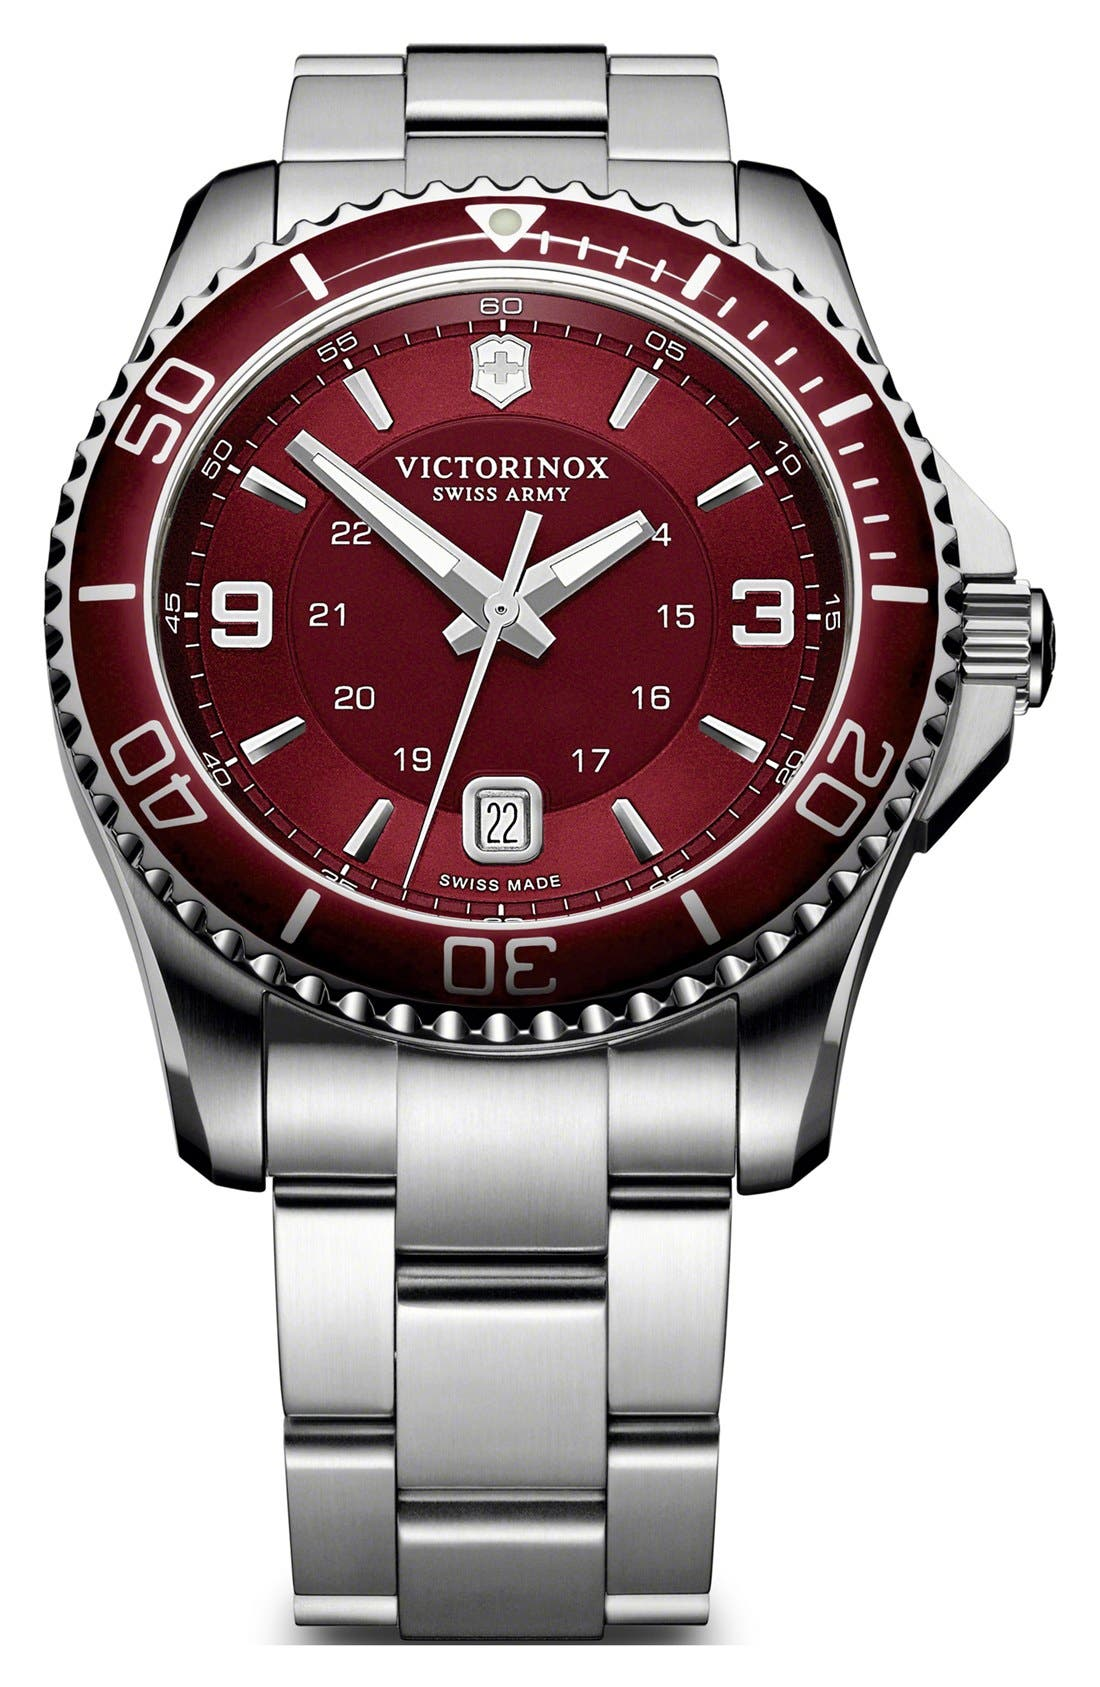 Alternate Image 1 Selected - Victorinox Swiss Army® 'Maverick GS' Two Tone Watch, 43mm